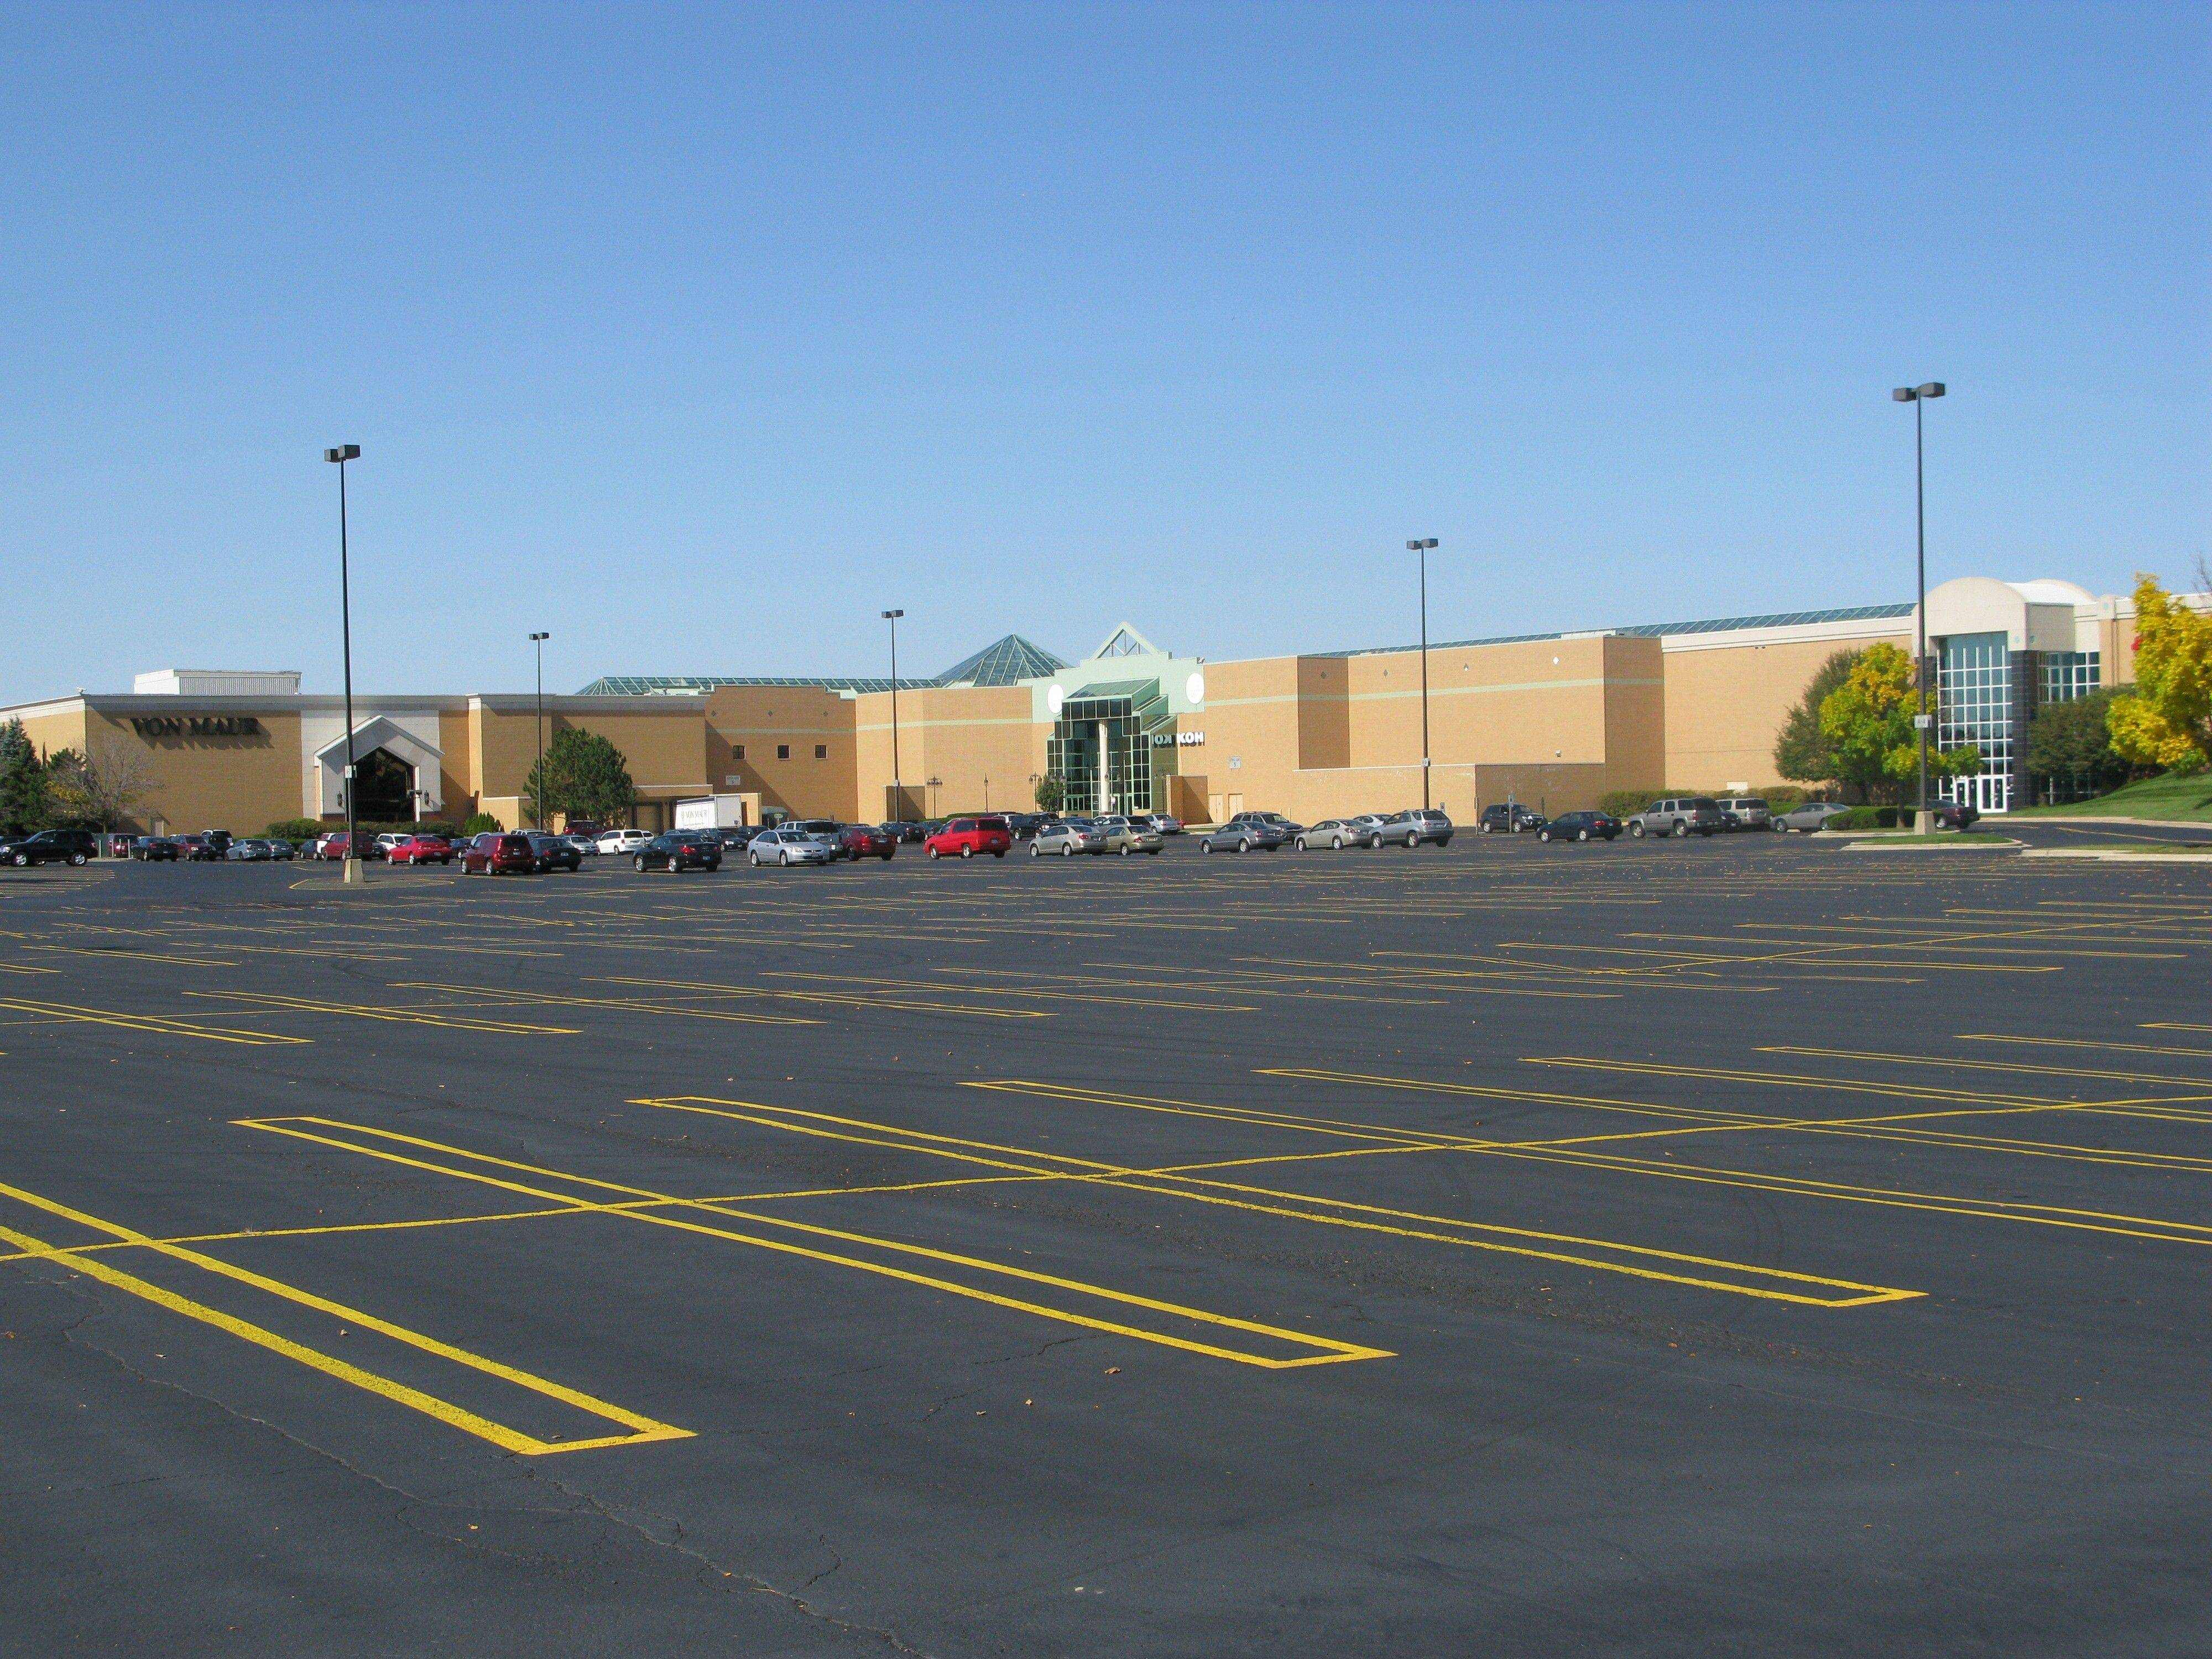 The parking lot at Charlestowne Mall on Route 64 in St. Charles has been completely redone.